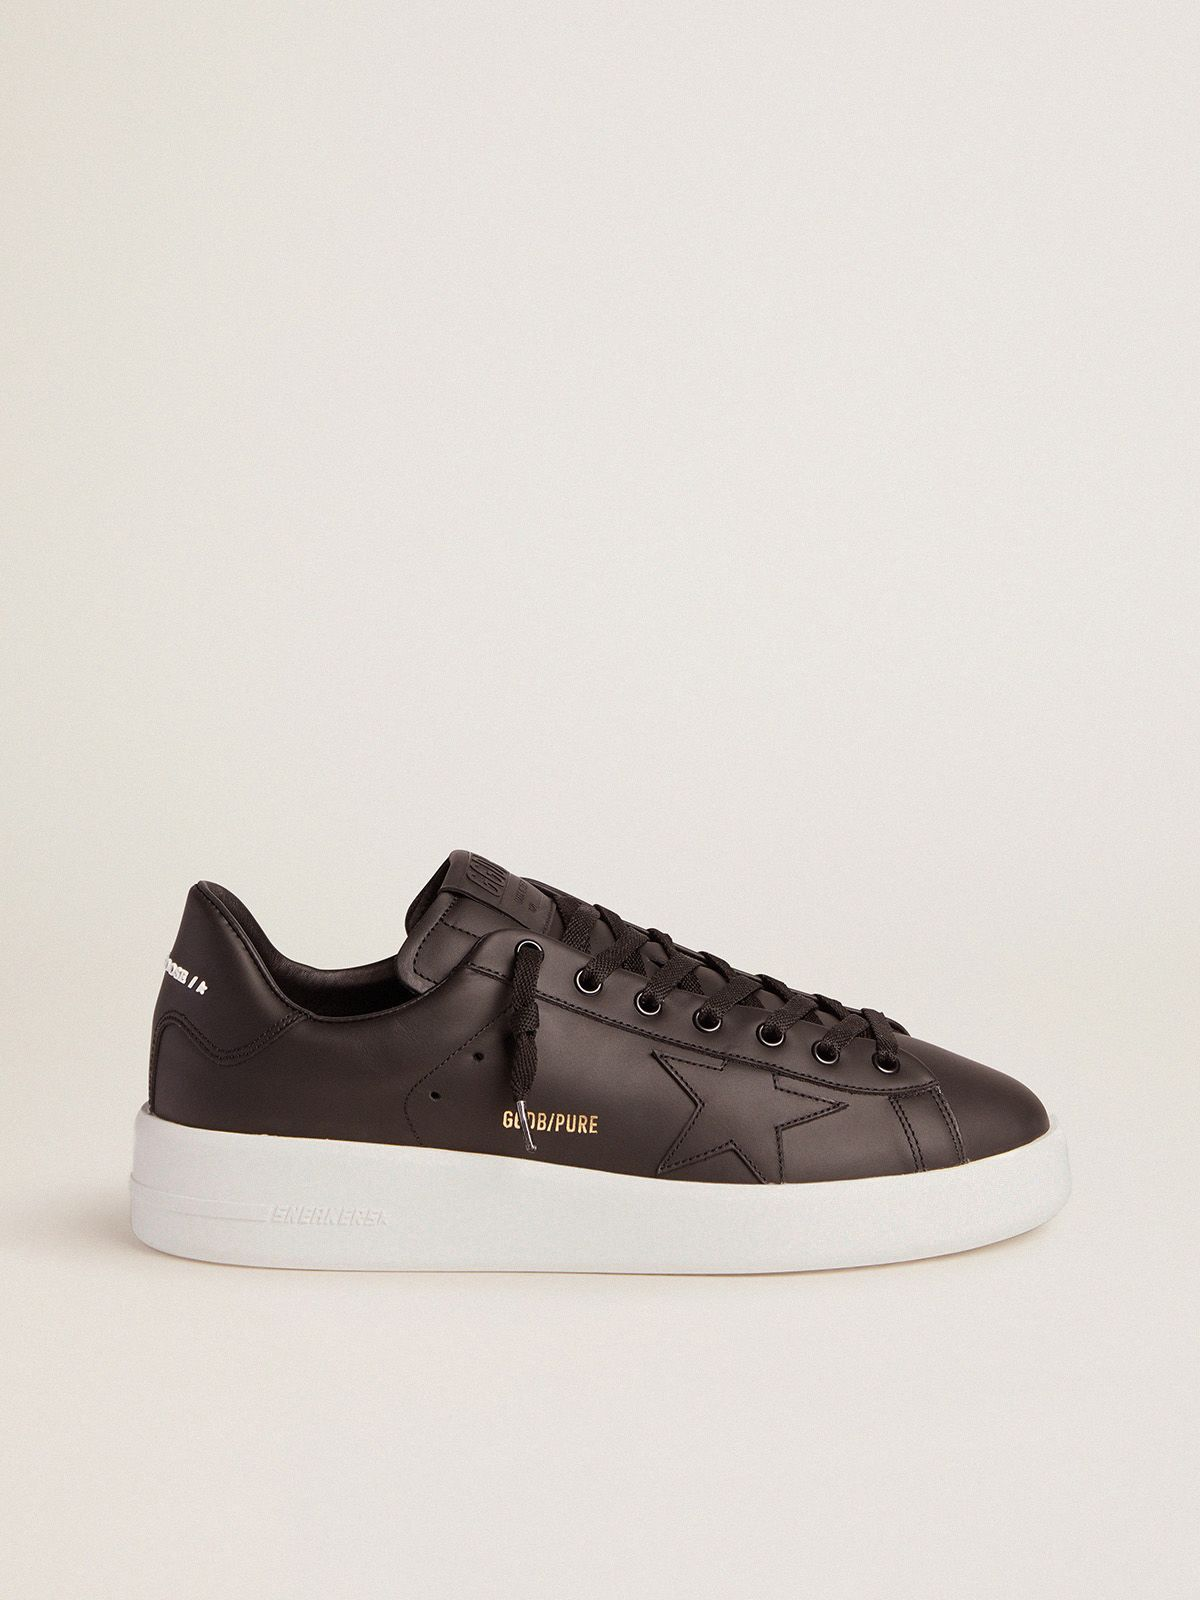 Sneakers PURESTAR nere in pelle